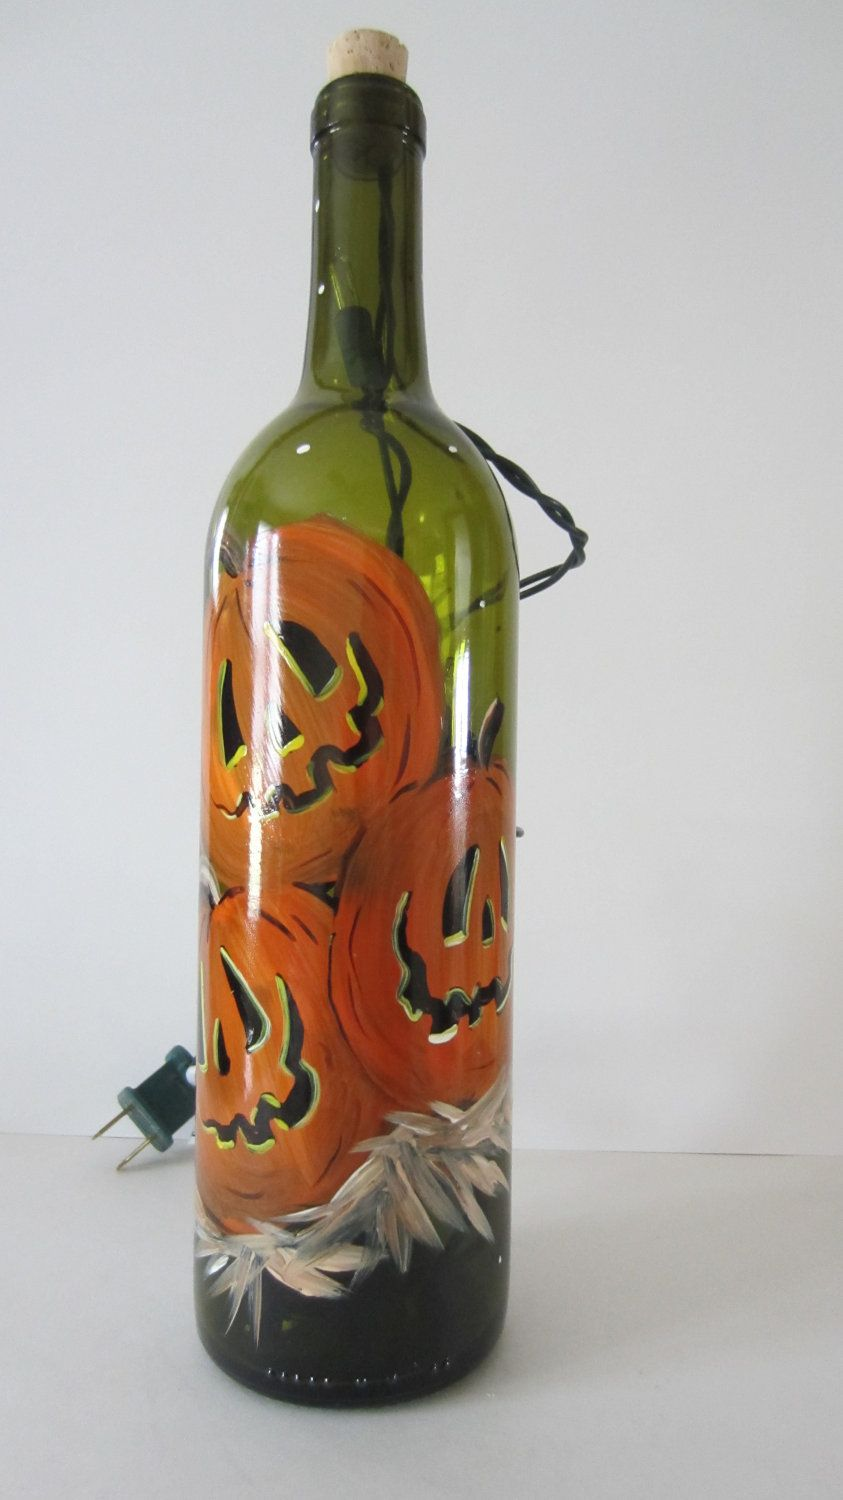 JackO Lantern Lighted Wine Bottle by EverythingPainted